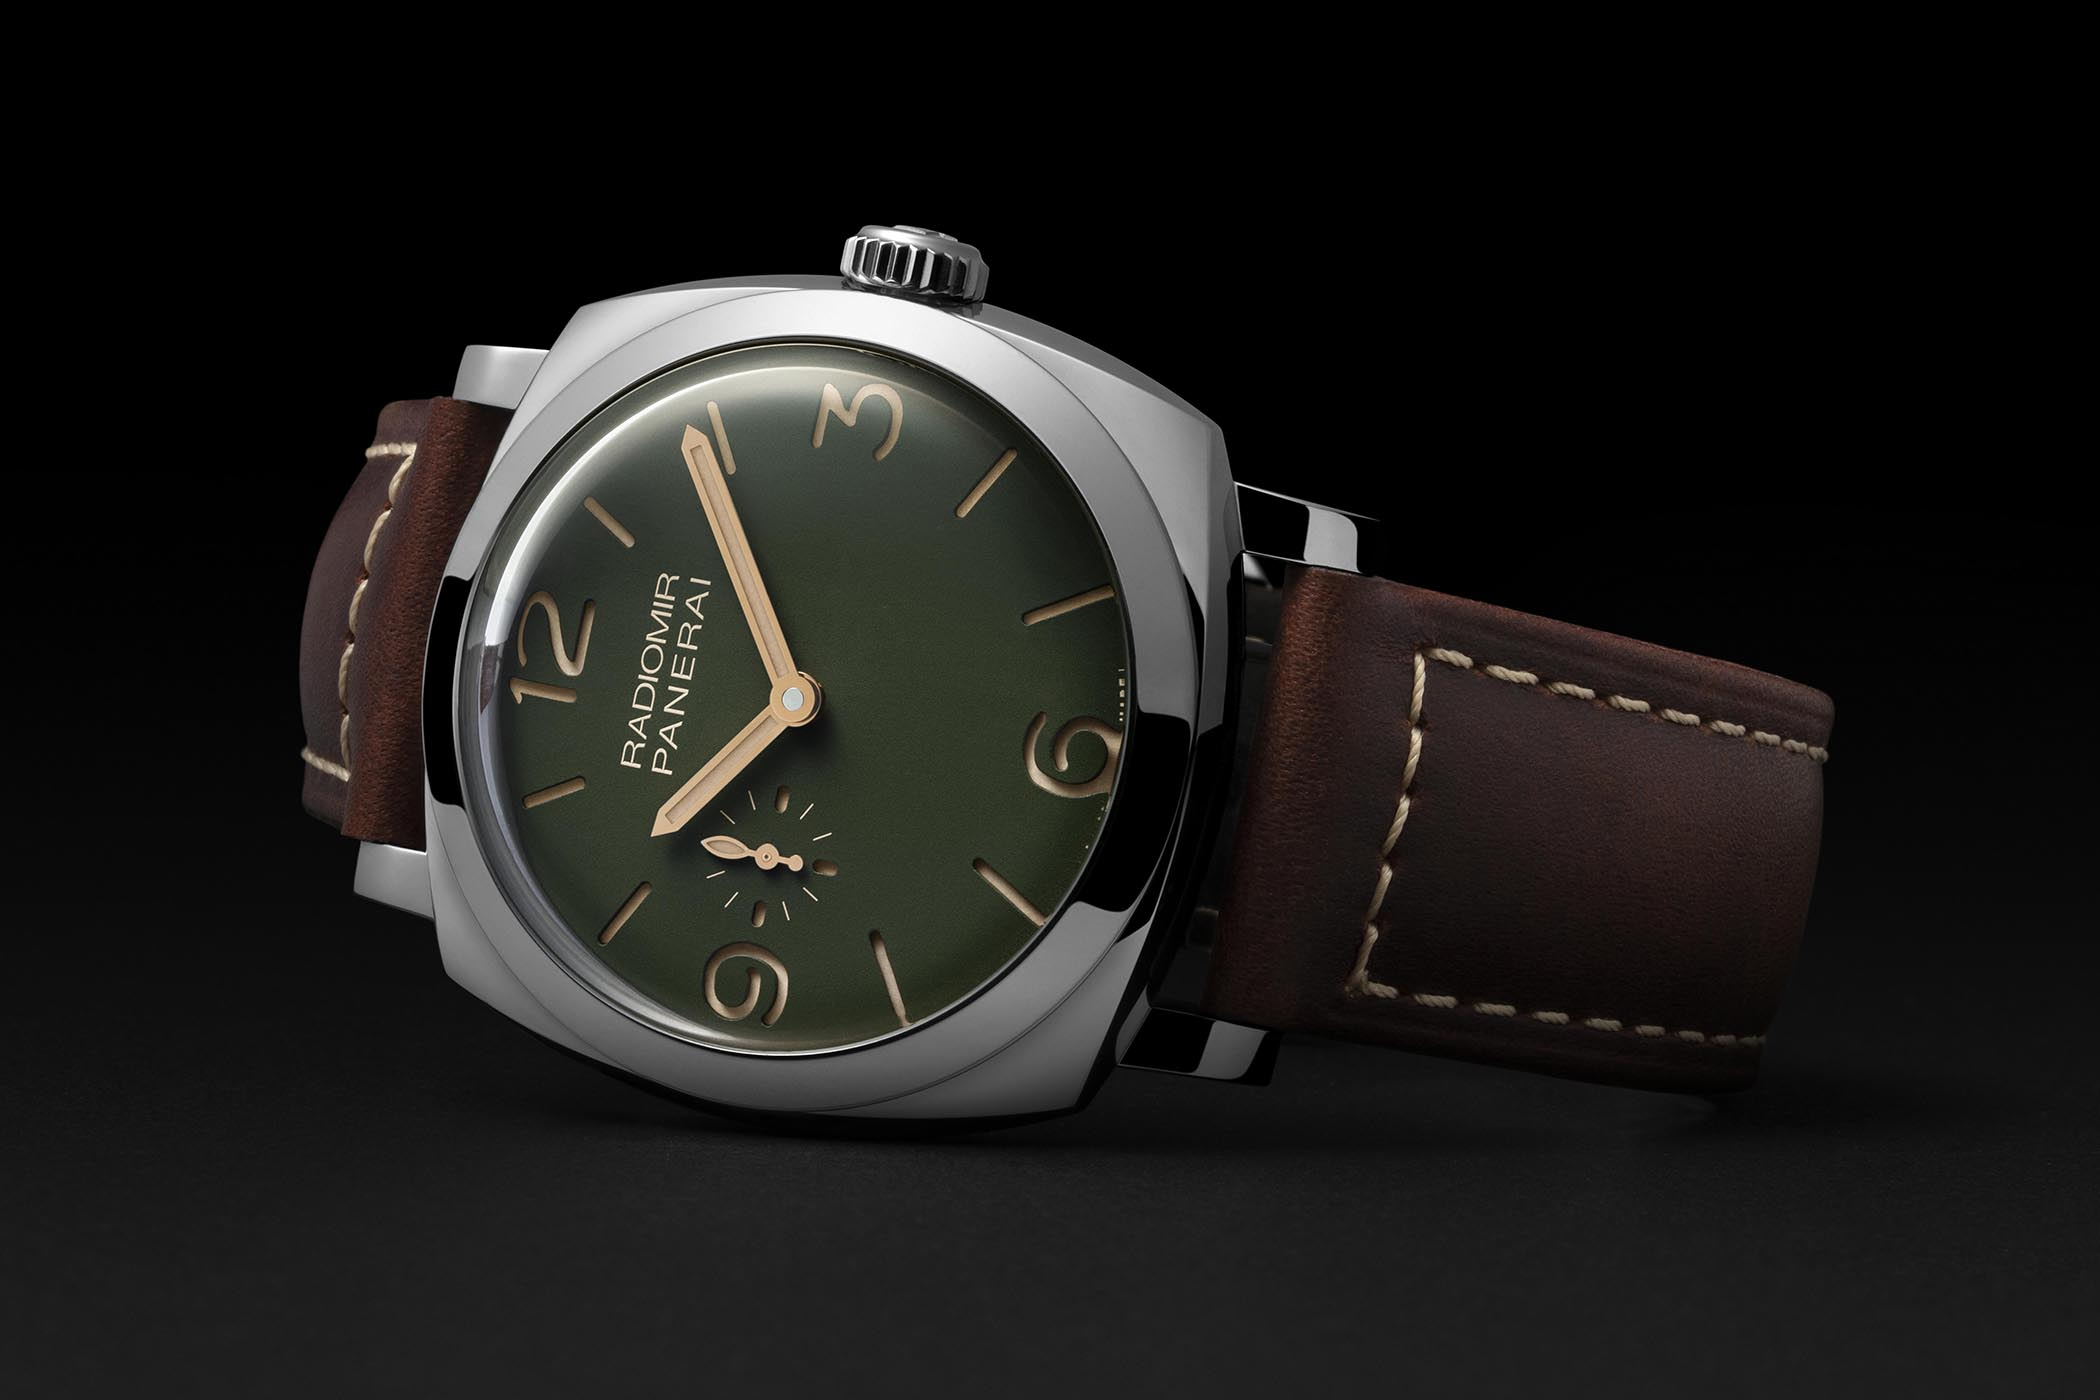 Panerai Radiomir 1940 Military Green 2019 Collection PAM00995 PAM00997 PAM00998 PAM00999